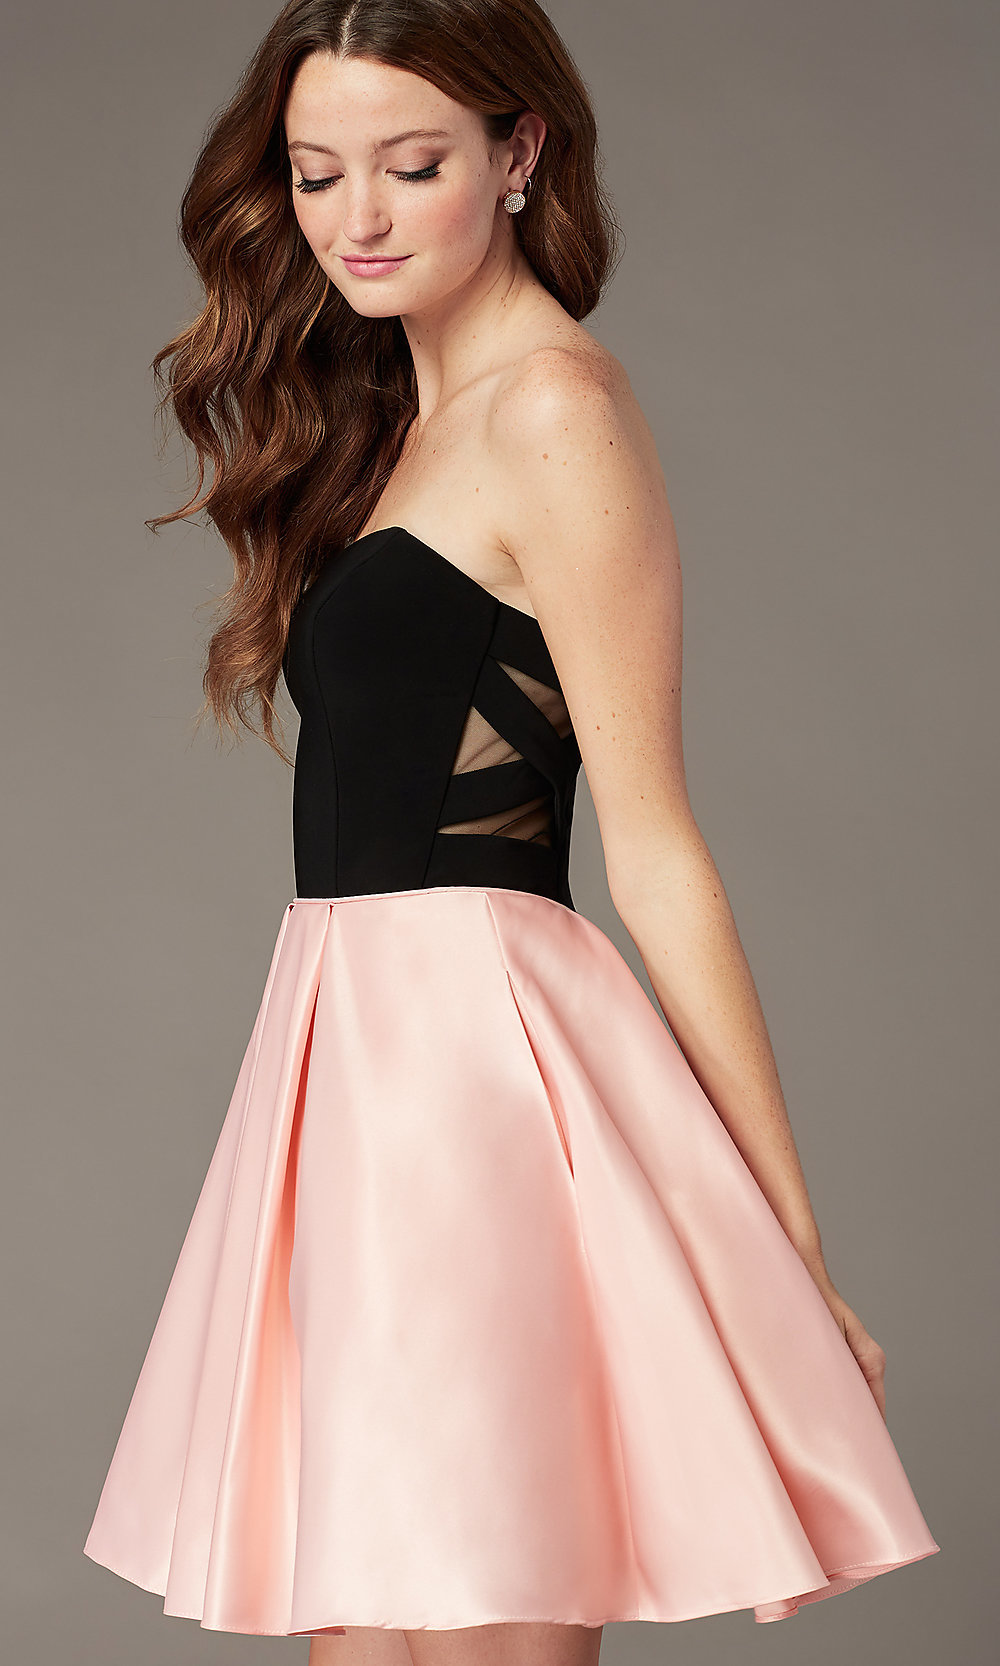 diversified in packaging Clearance sale vast selection Short Strapless Homecoming Dress with Sheer Sides